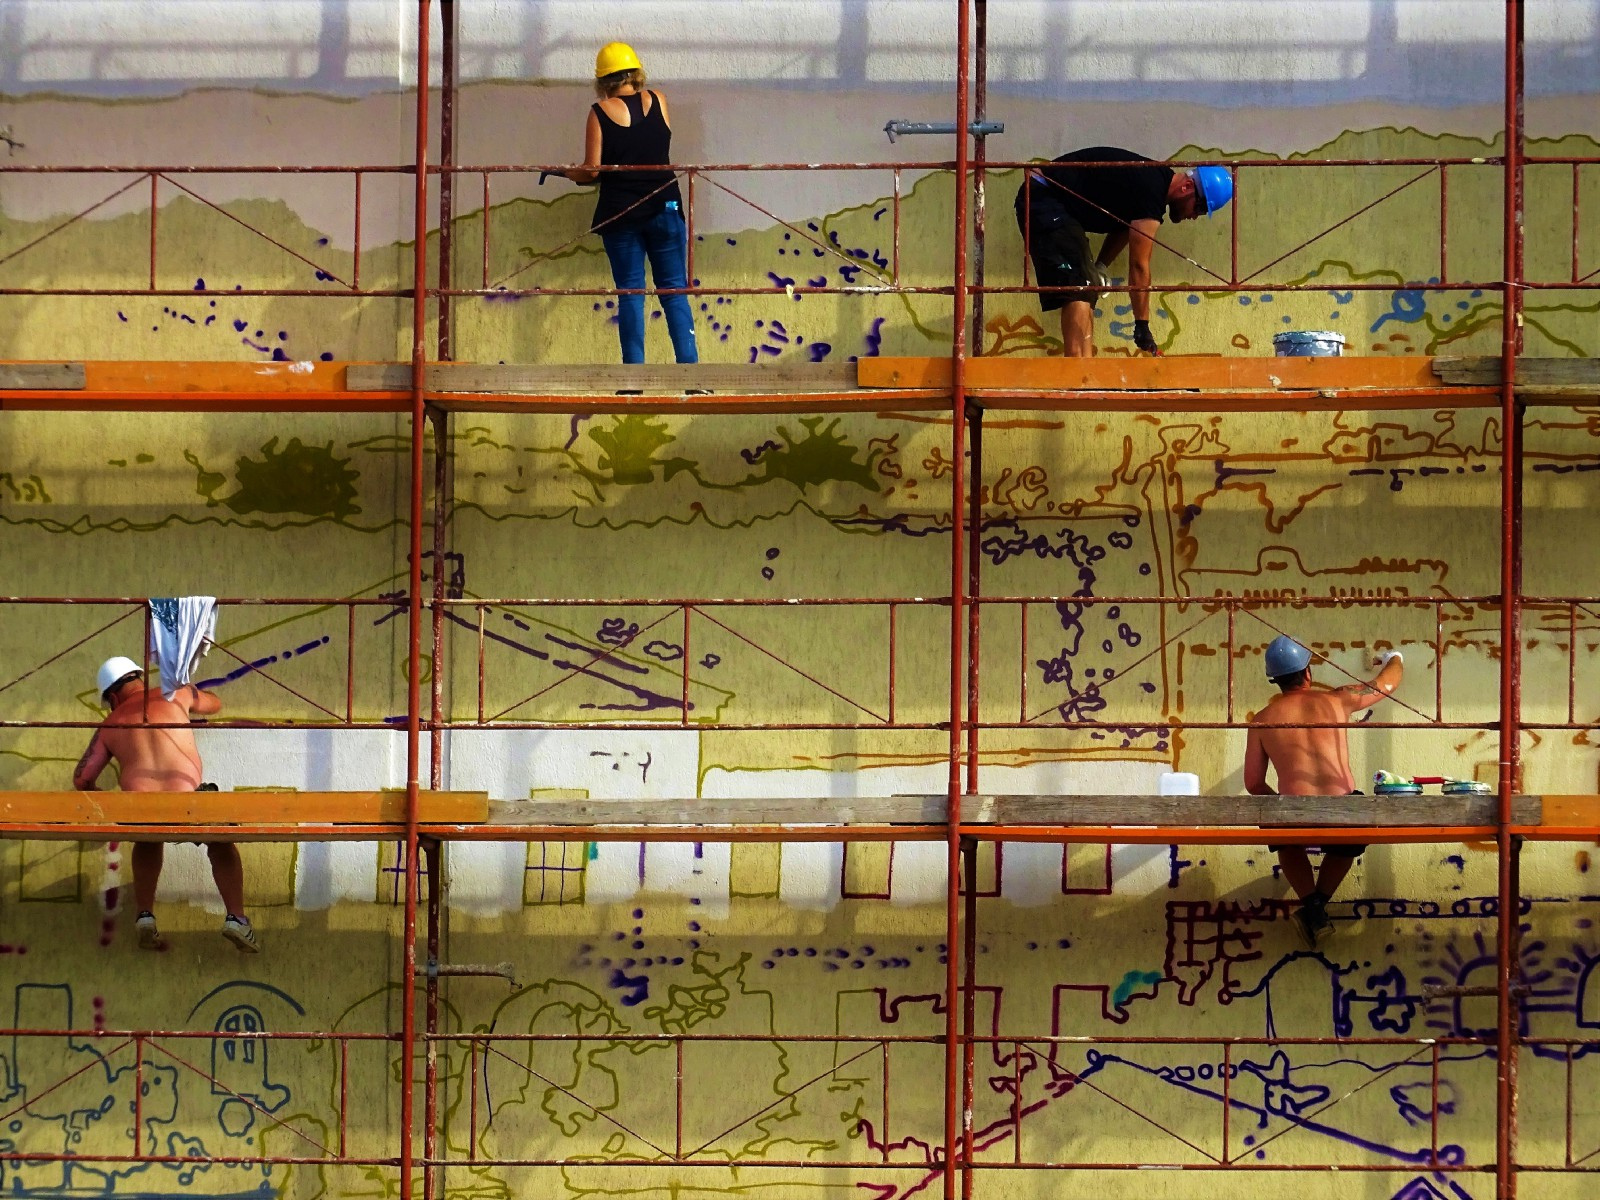 A group of people on scaffolding paint a mural.